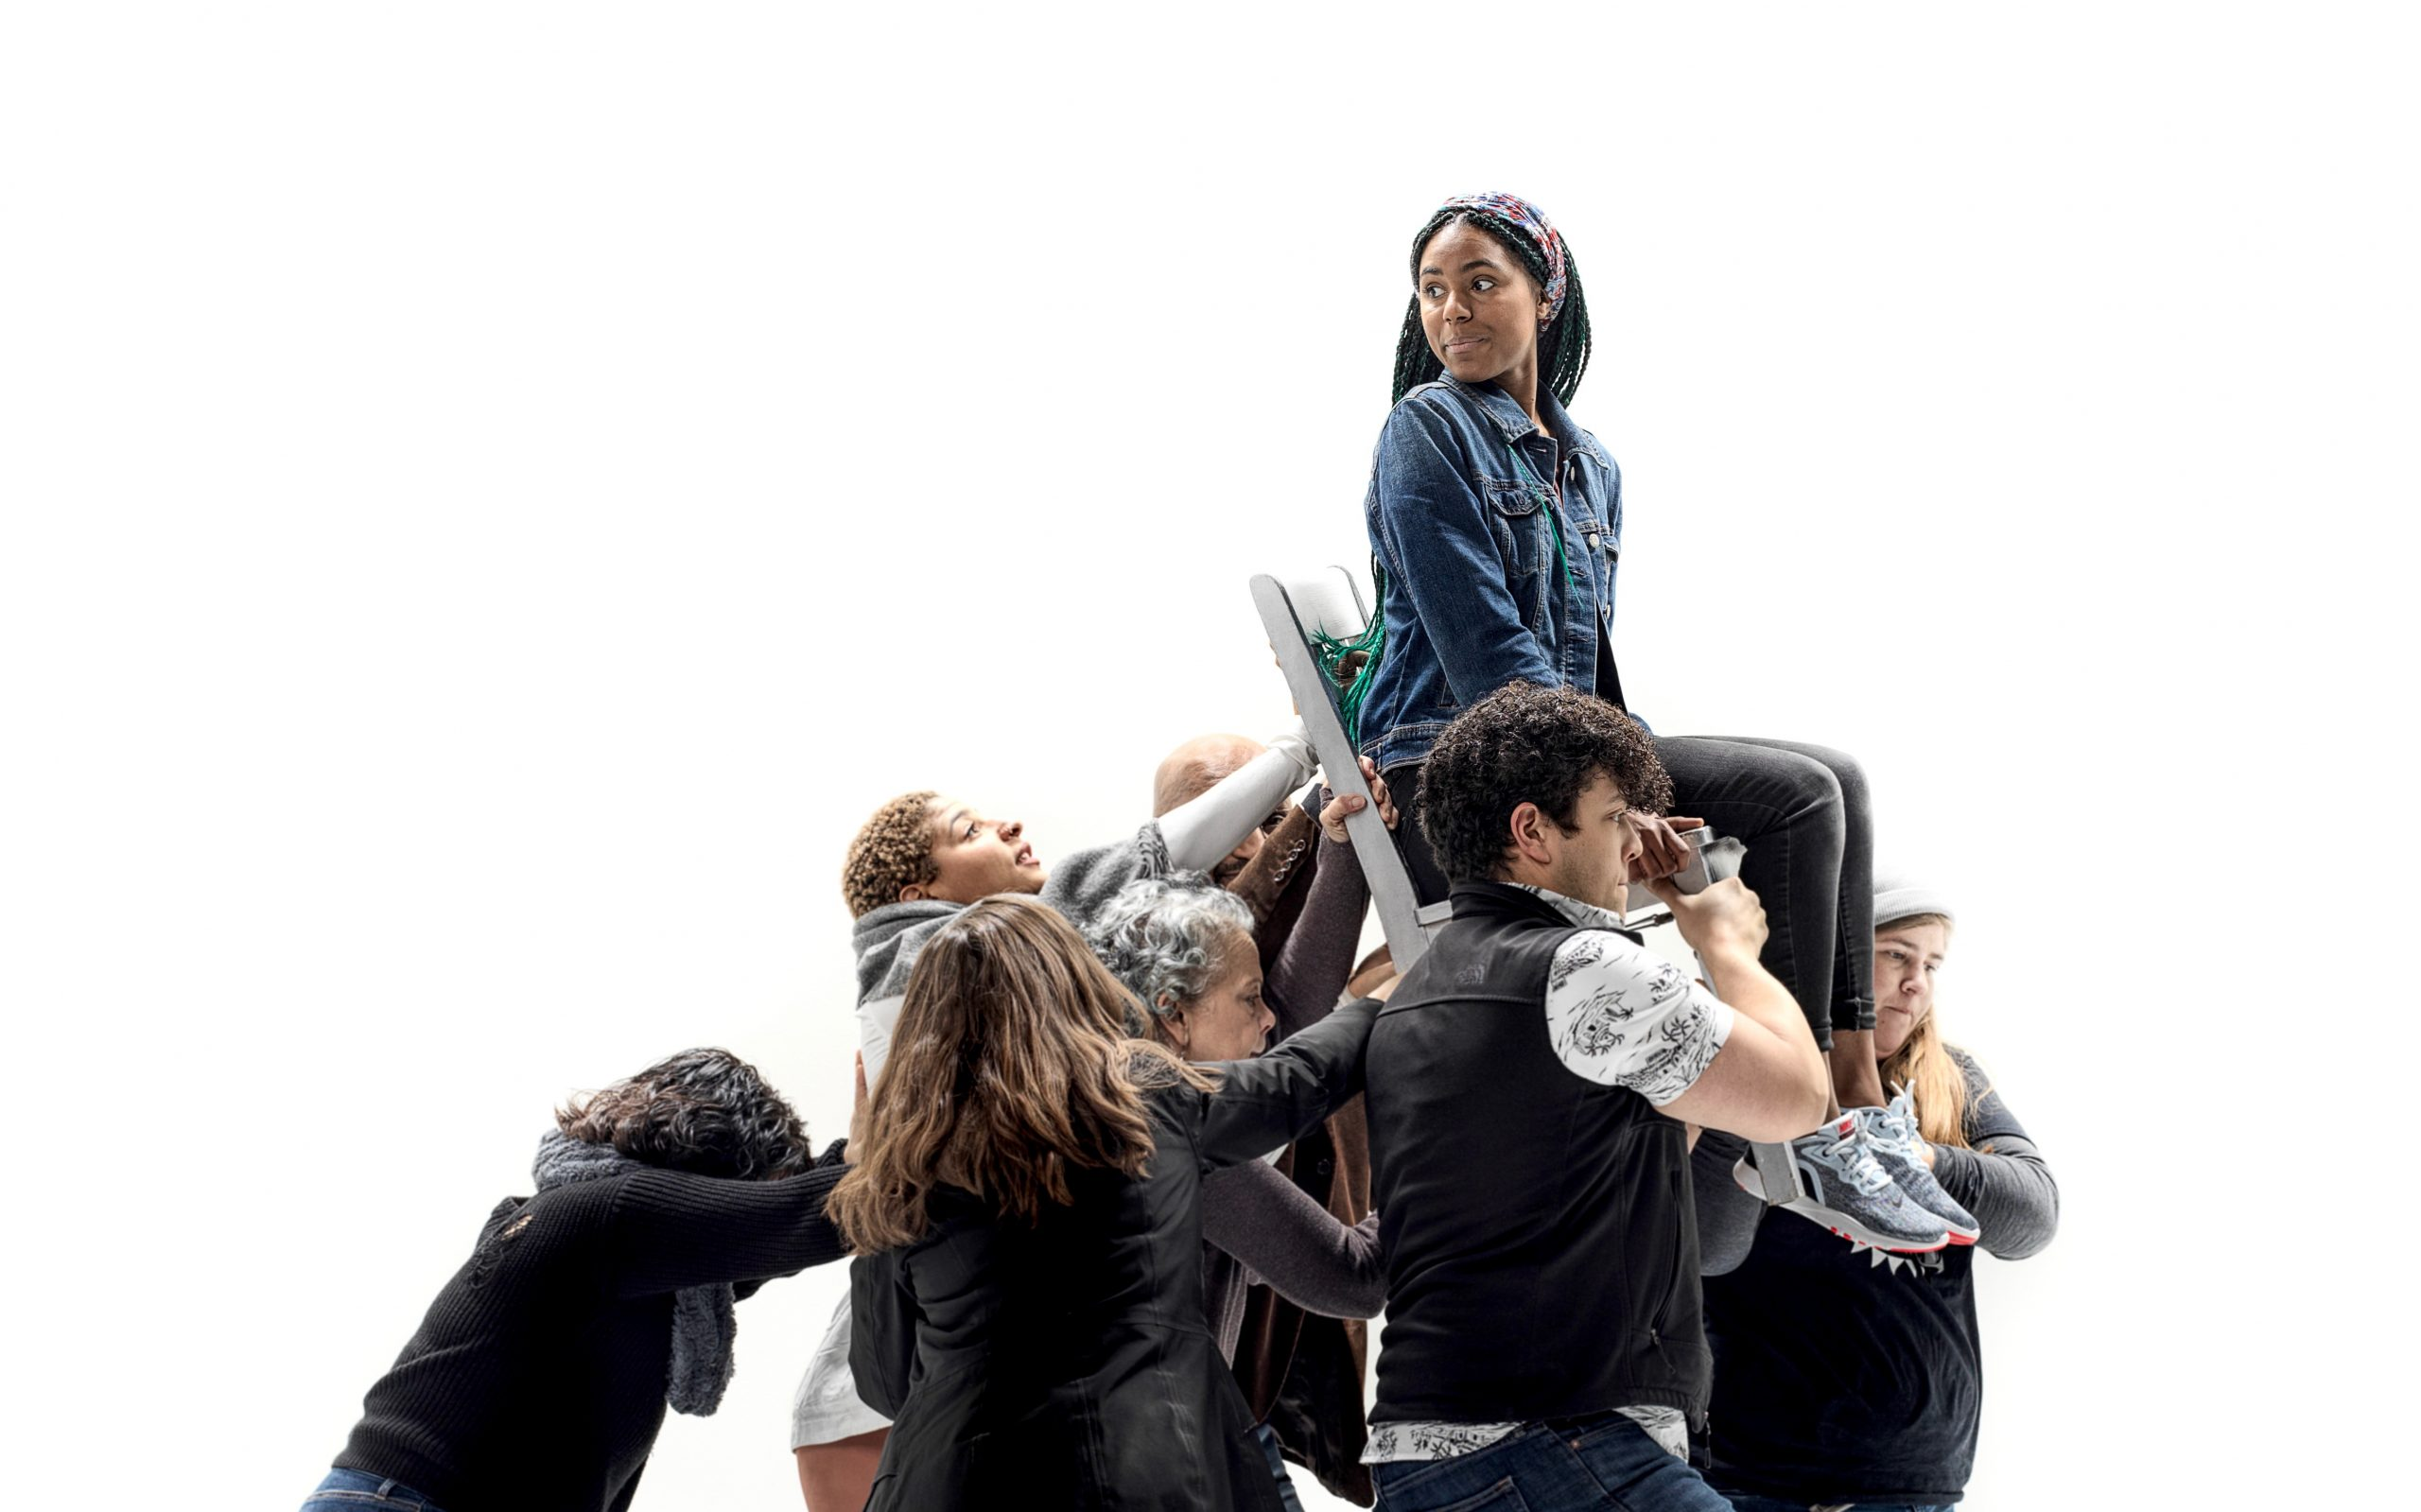 'The Tipping Point' dramatizes the precarious lives of refugees worldwide. (photo: Corningworks / Frank Walsh)